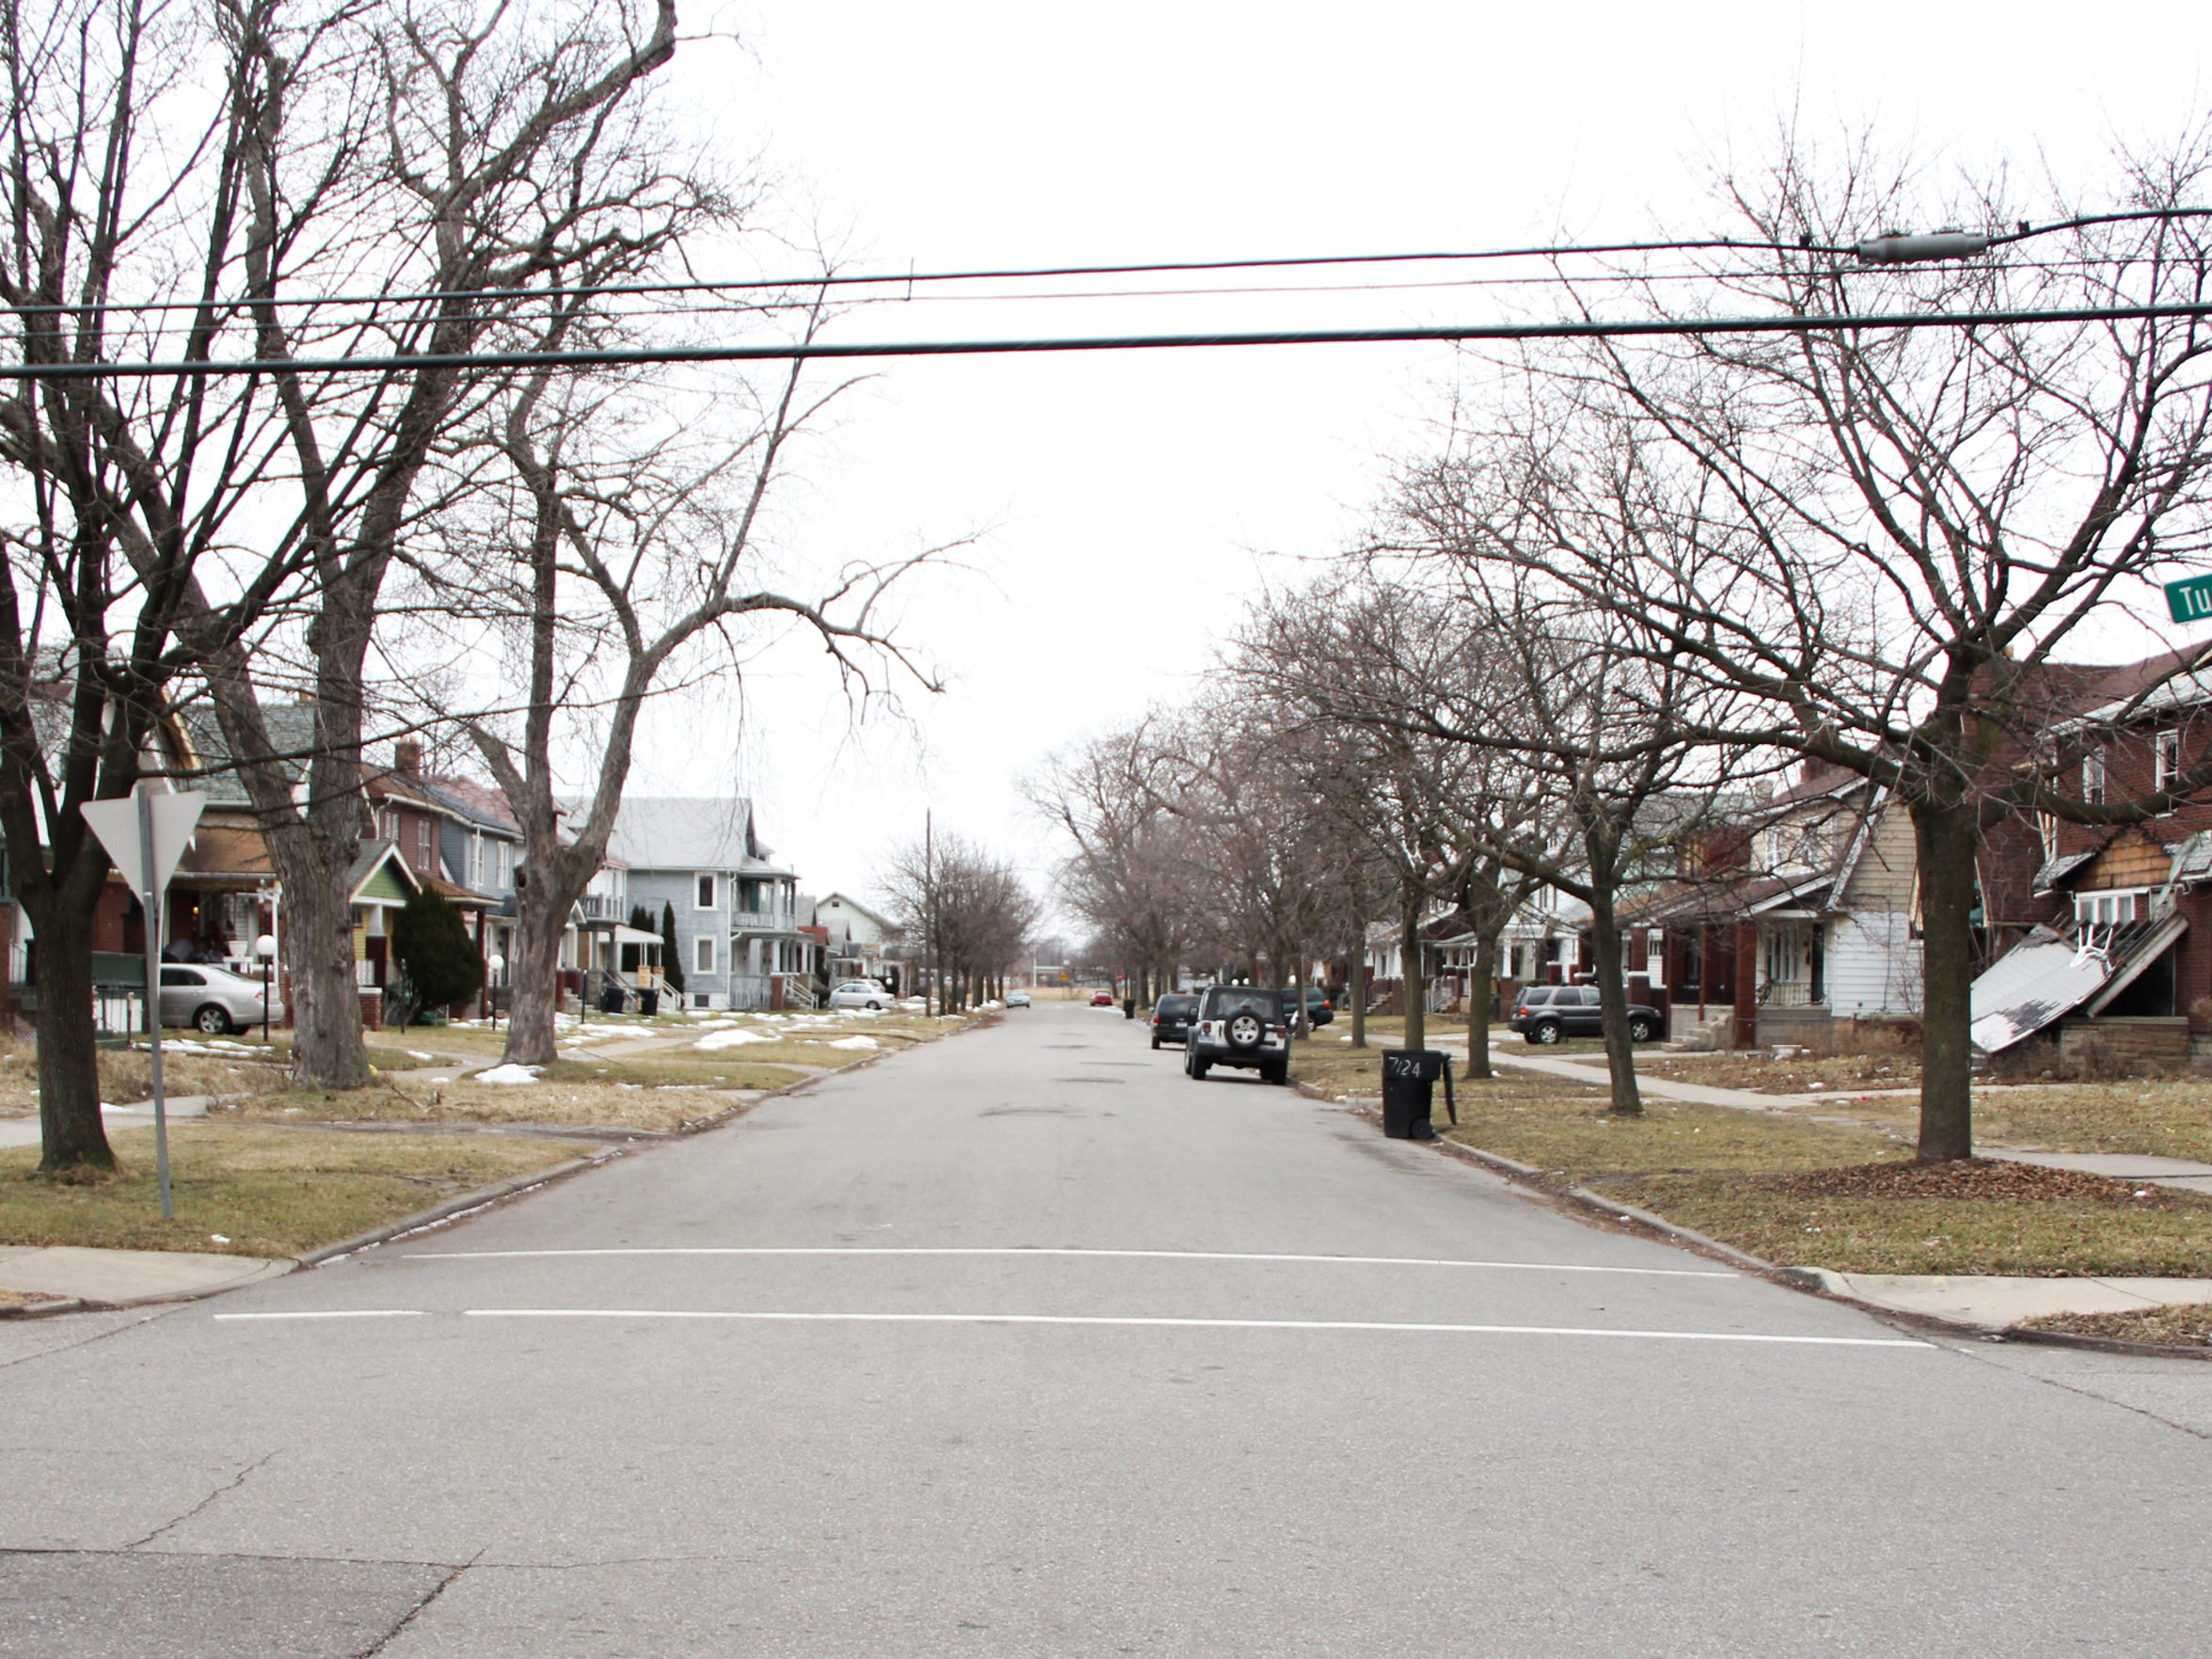 The corner of Tuxedo and Monica streets in Detroit, near 7124 Tuxedo, where Free Press Editorial Page Editor Stephen Henderson's family lived when he was born in 1970. City officials estimate 15 houses on the block are empty and in need of either demolition or renovation. Henderson hopes to remake the house at 7124 as a writer's residence and literary center for the neighborhood.